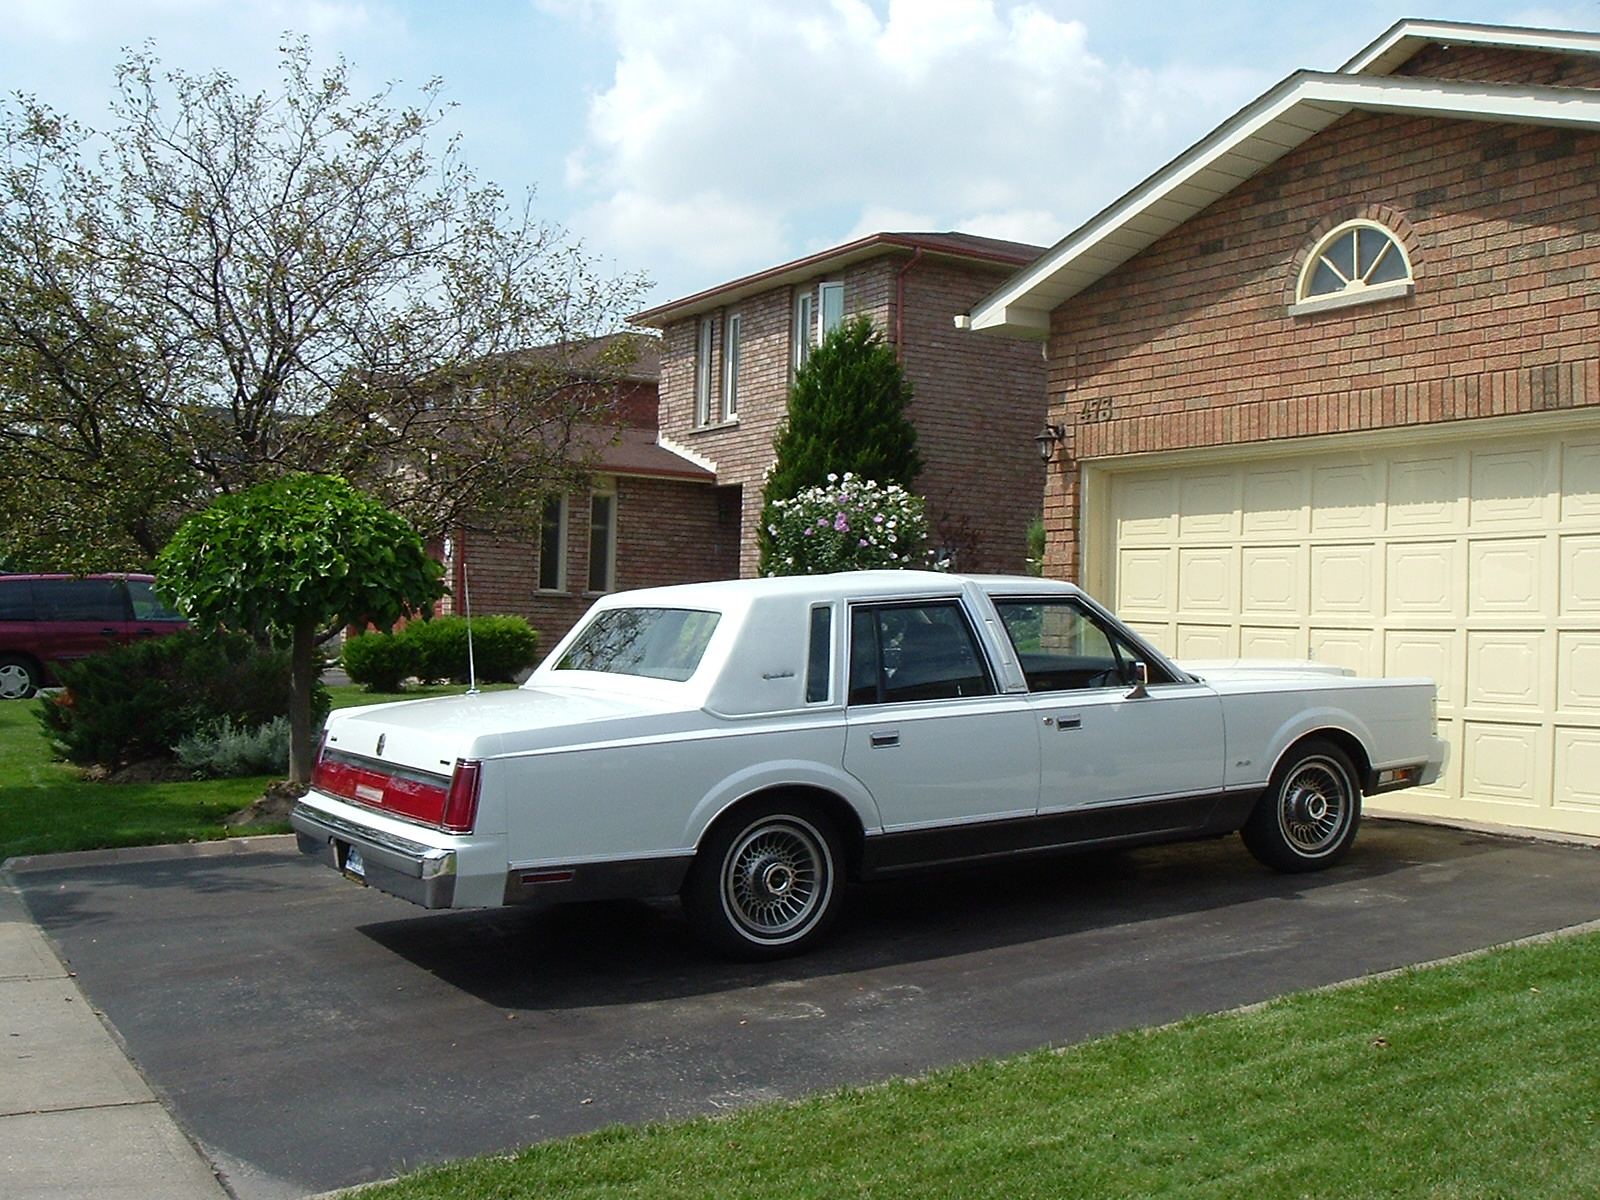 1986 Lincoln Town Car - Ford Products - Antique Automobile Club Of America